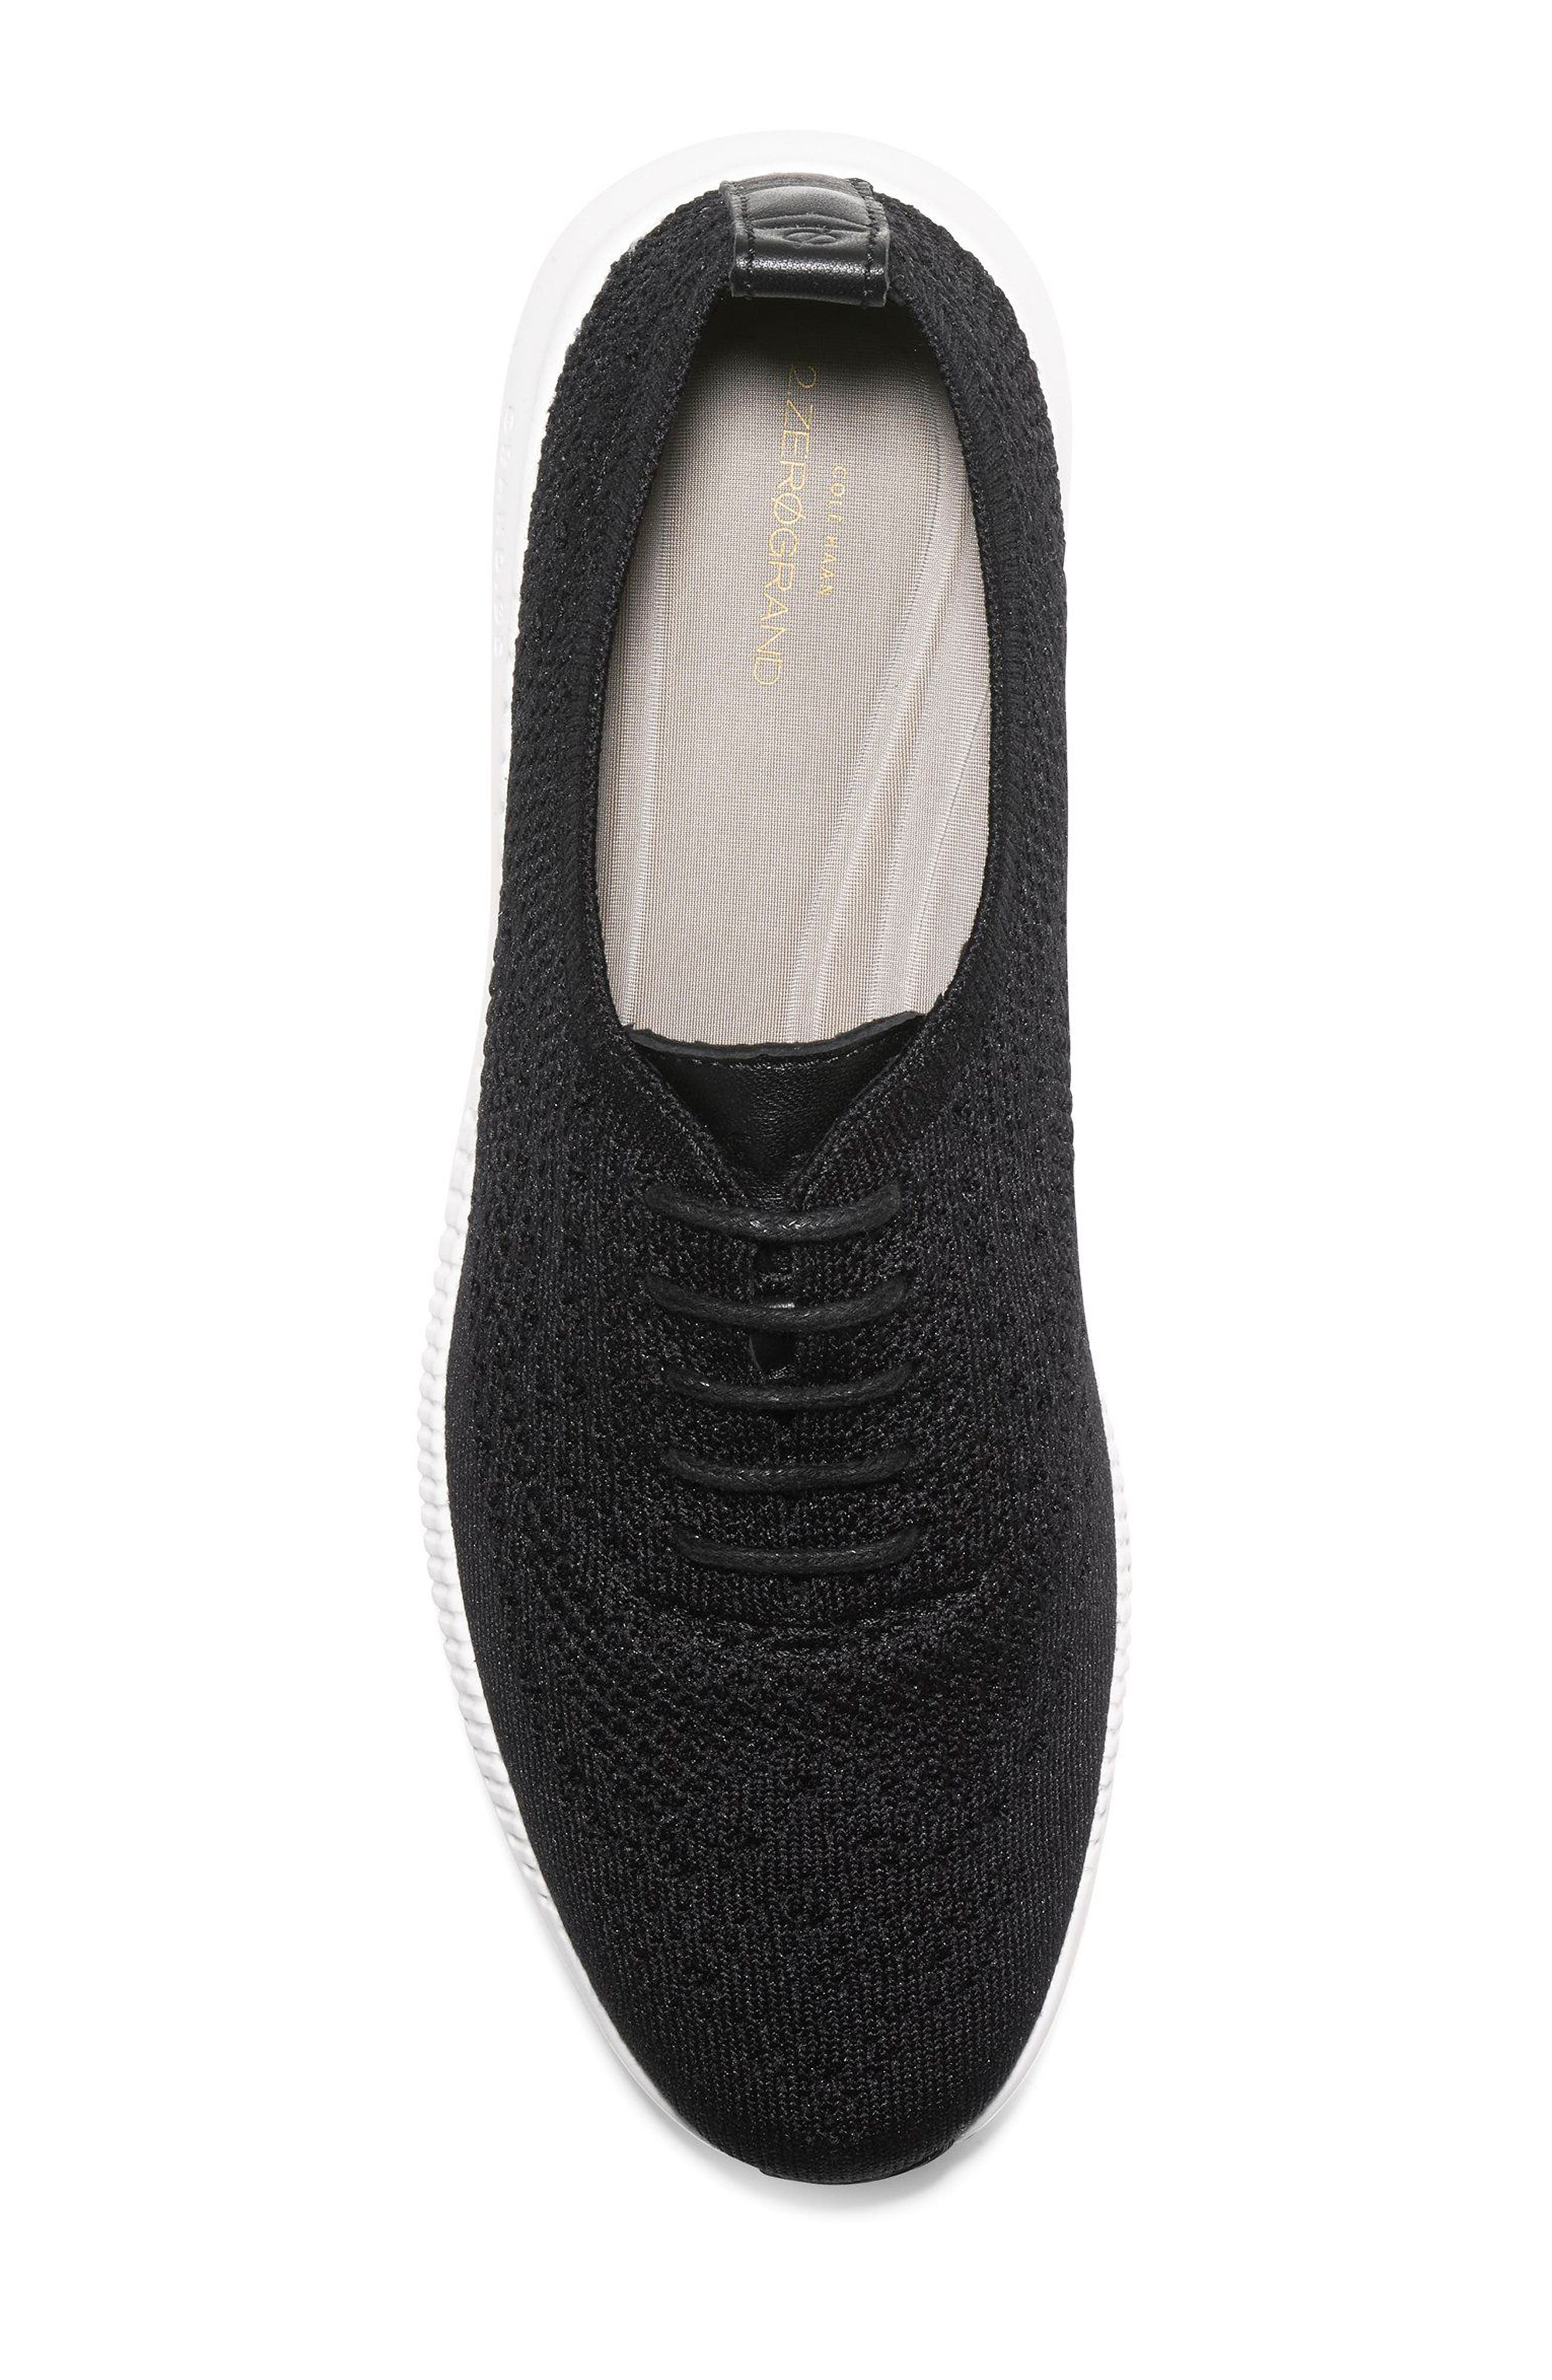 COLE HAAN, 2.ZERØGRAND Stitchlite Wingtip Sneaker, Alternate thumbnail 5, color, BLACK FABRIC